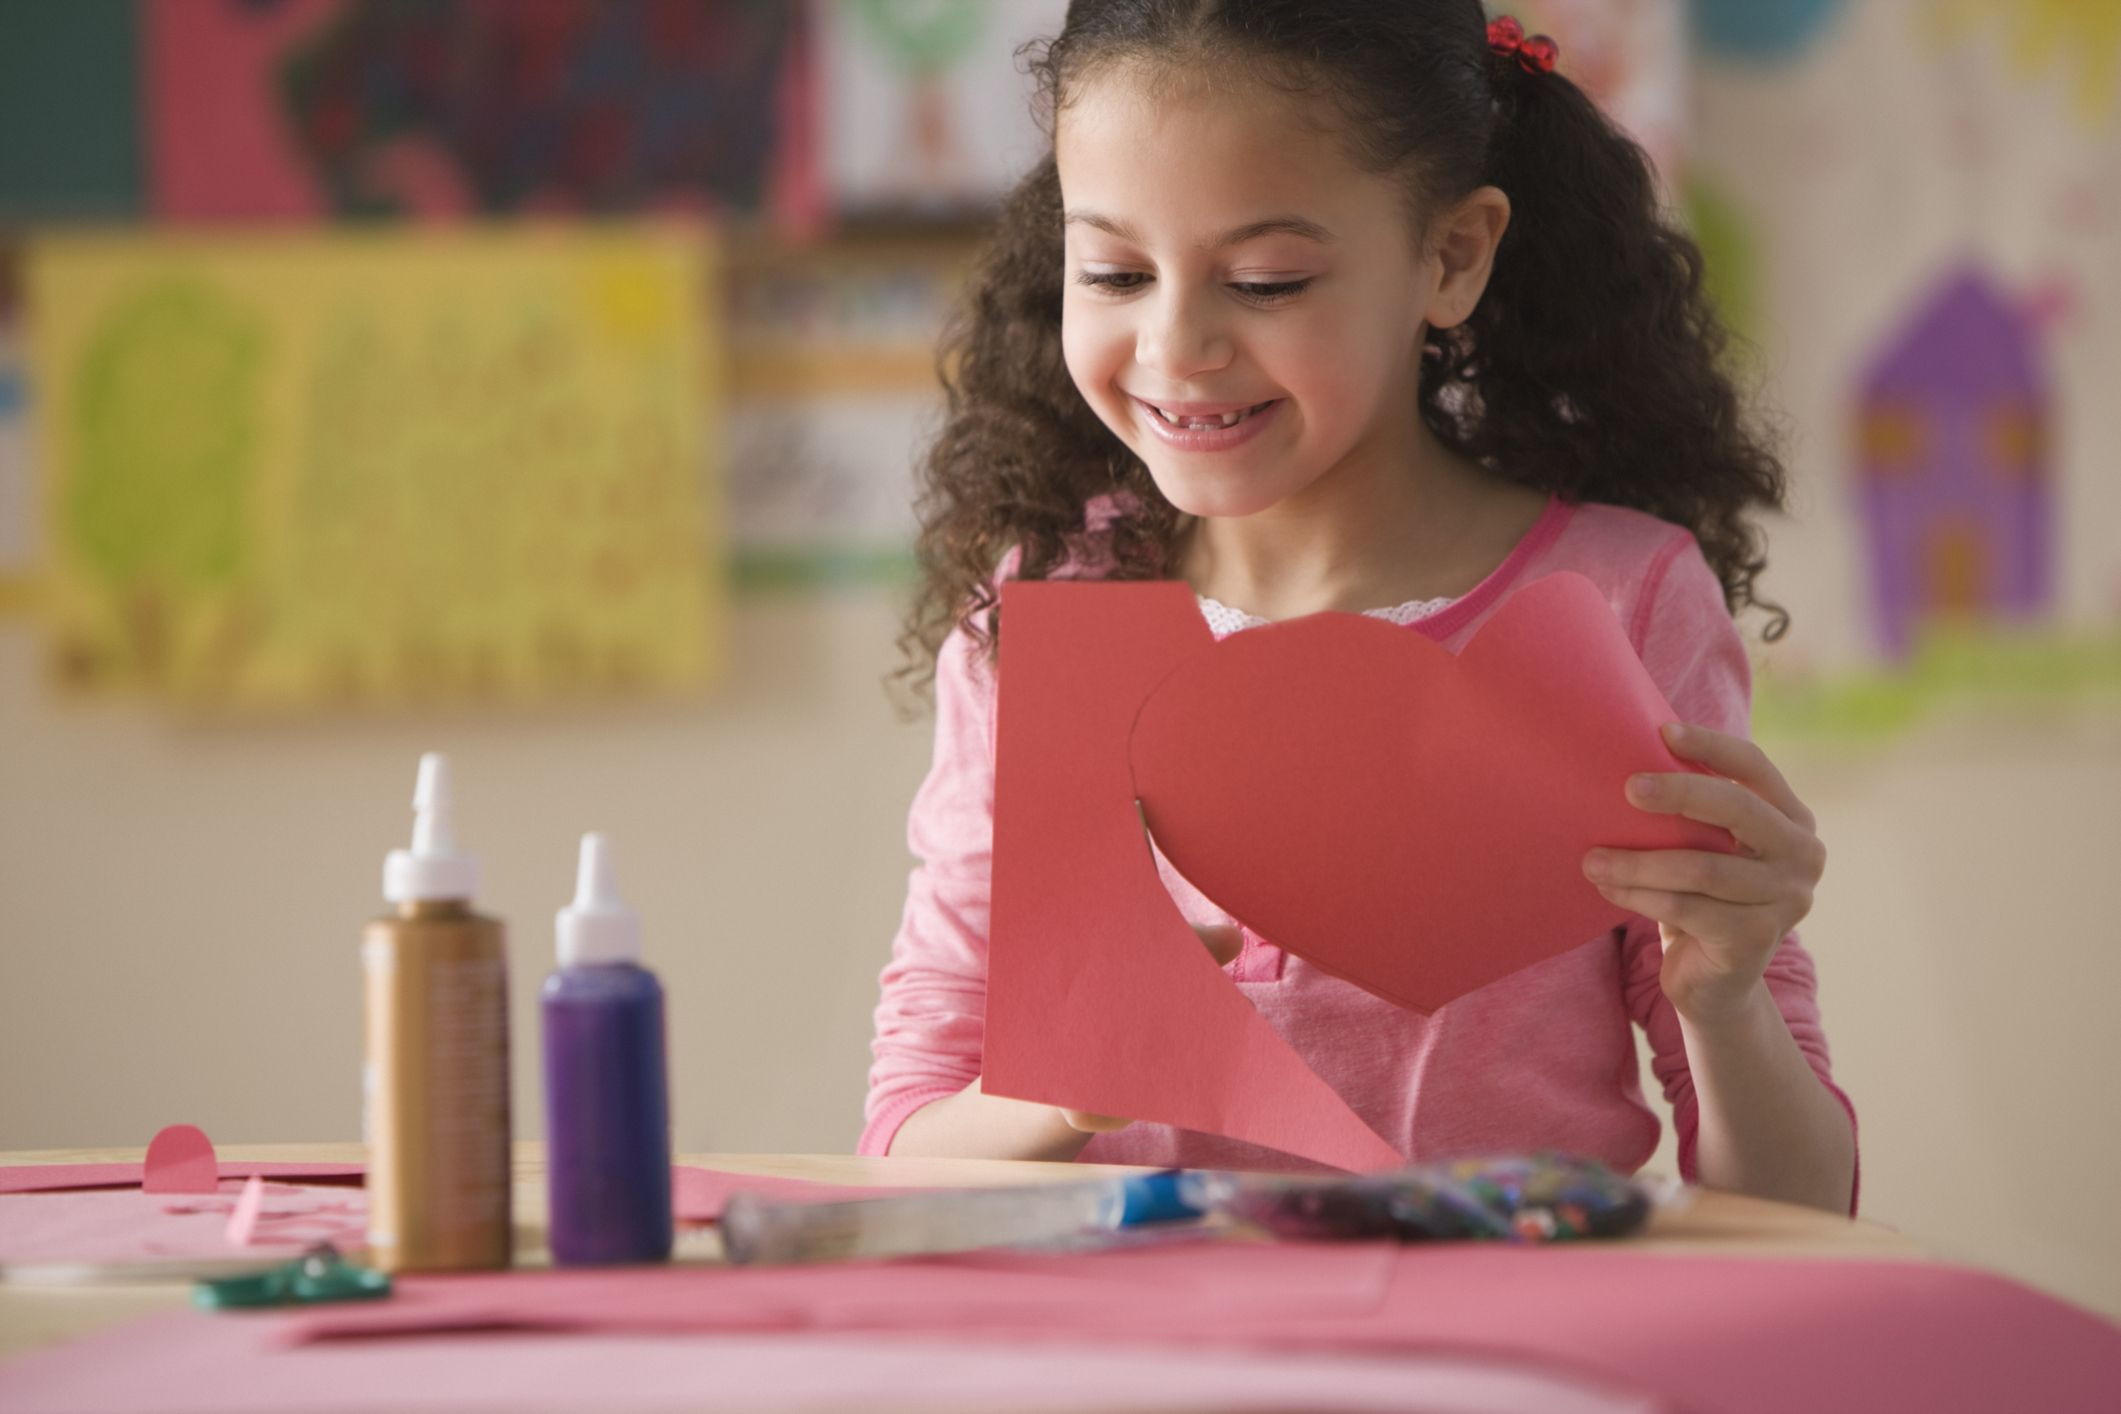 30 Best Valentine's Day Crafts for Kids That They'll Love Creating